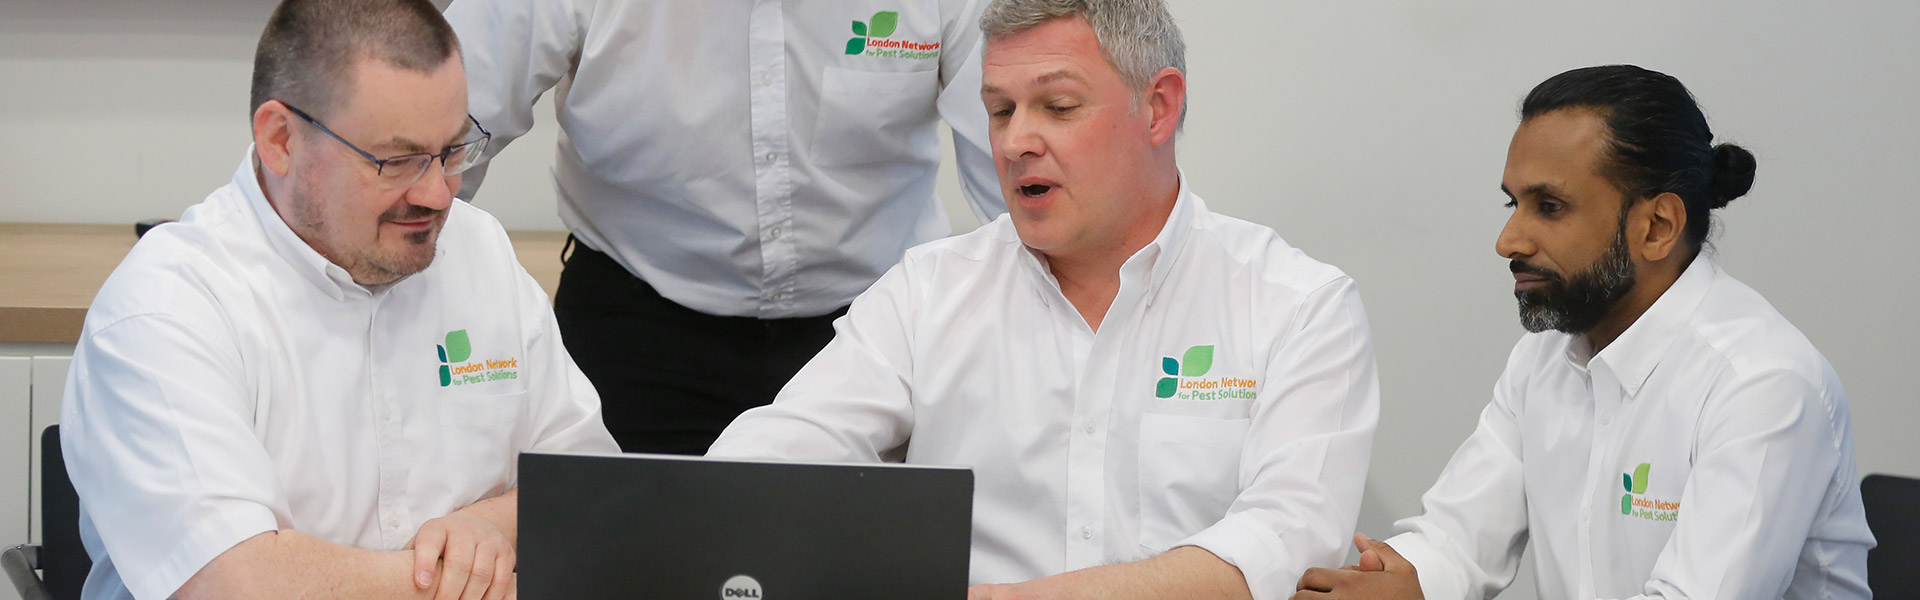 London-Network-for-pest-solutions-team